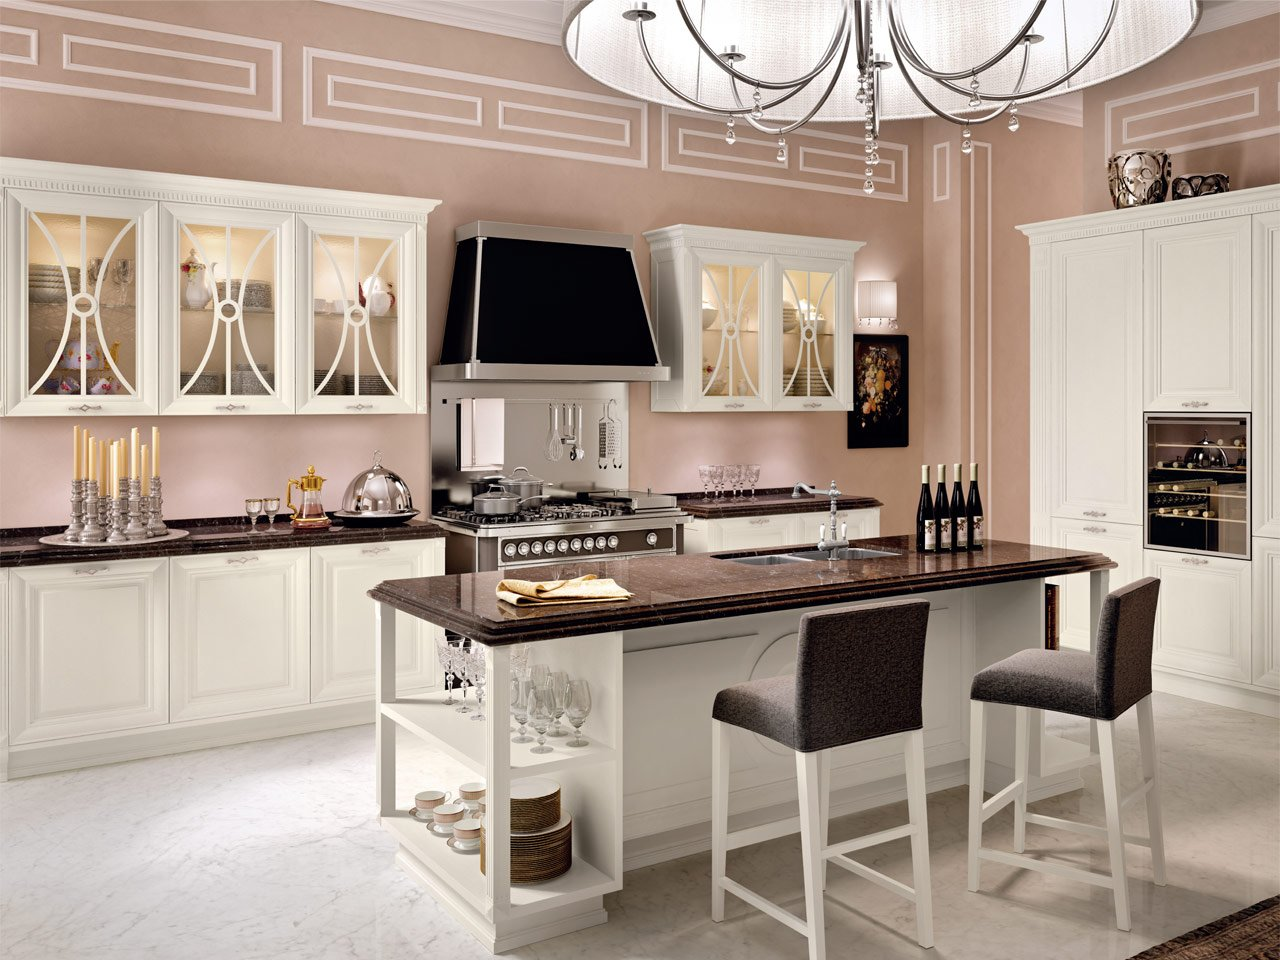 Pantheon cucina con isola by cucine lube